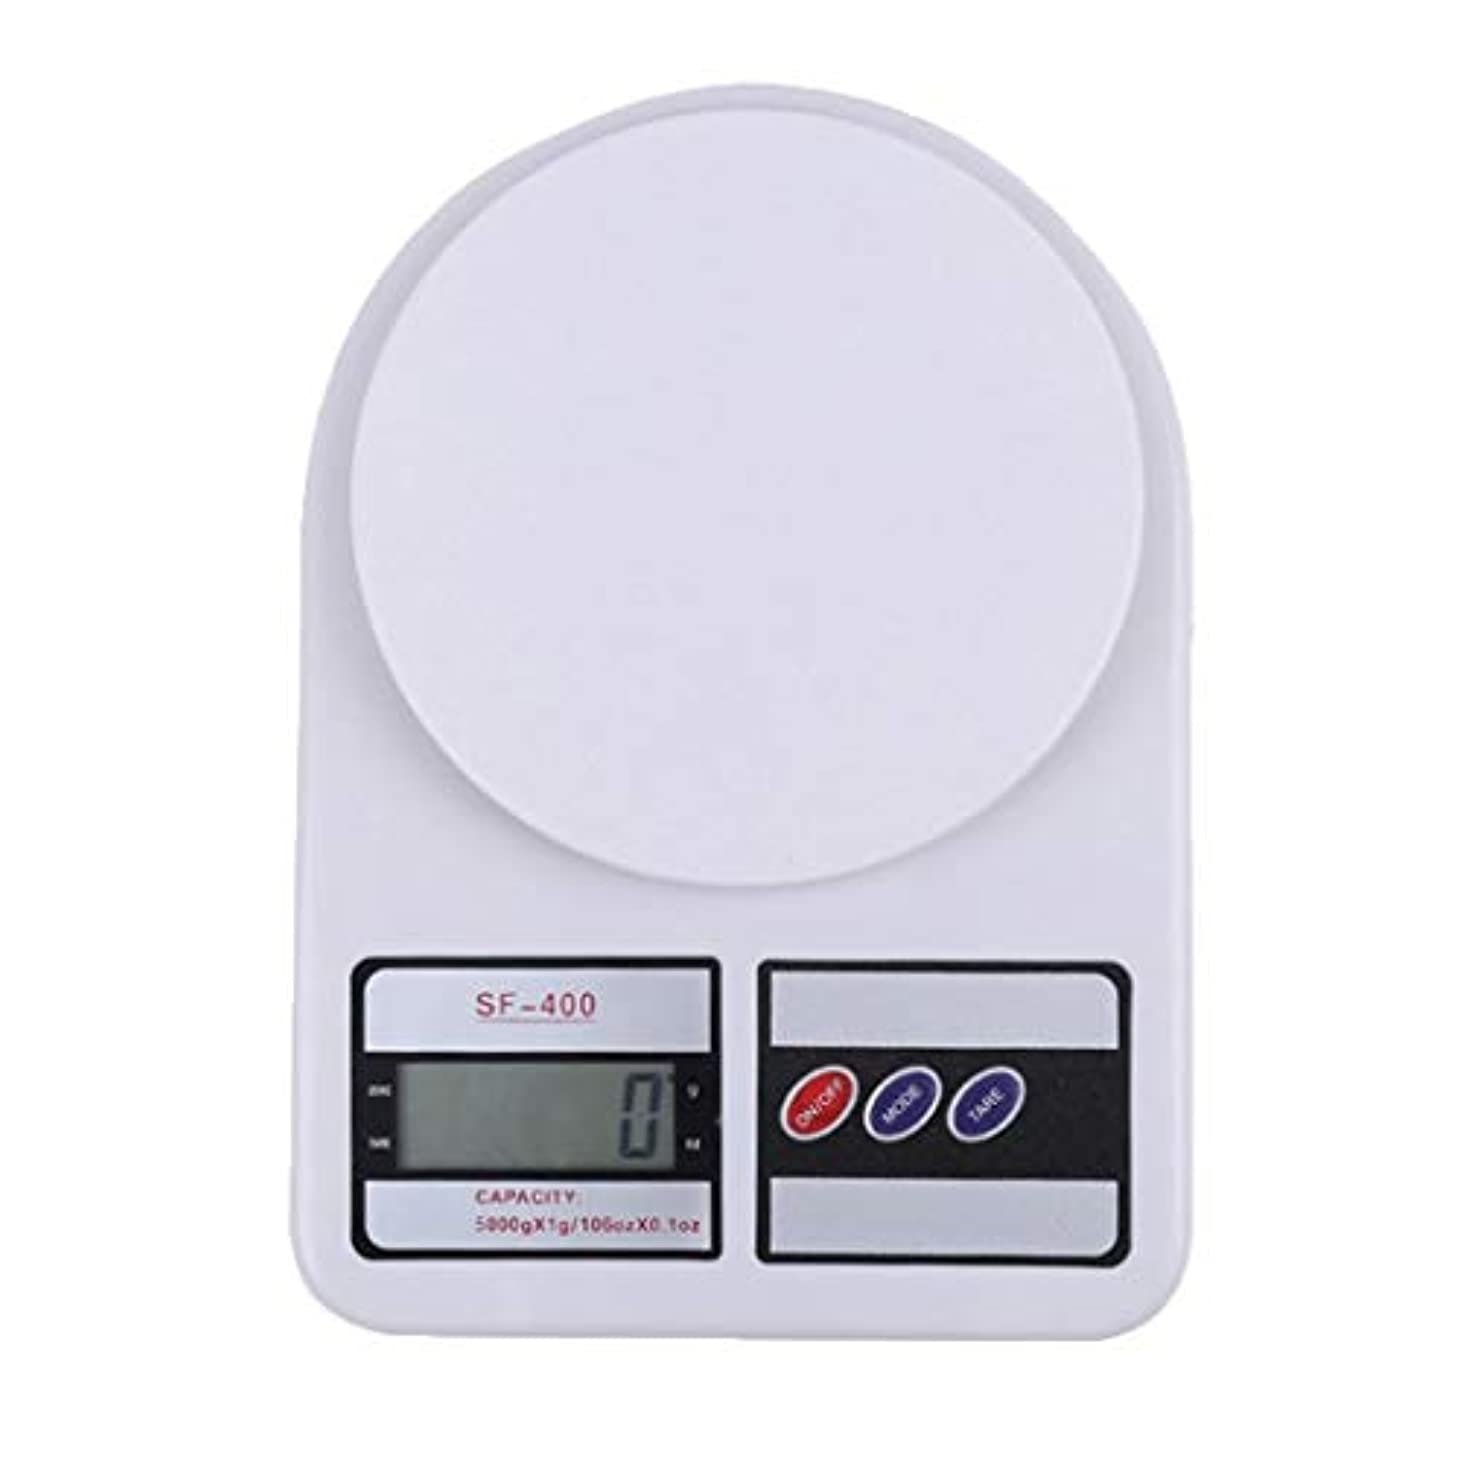 Redpol Electronic High Precision Kitchen Weight Food LCD Display Digital Mini Scale Tool & Gadget Sets